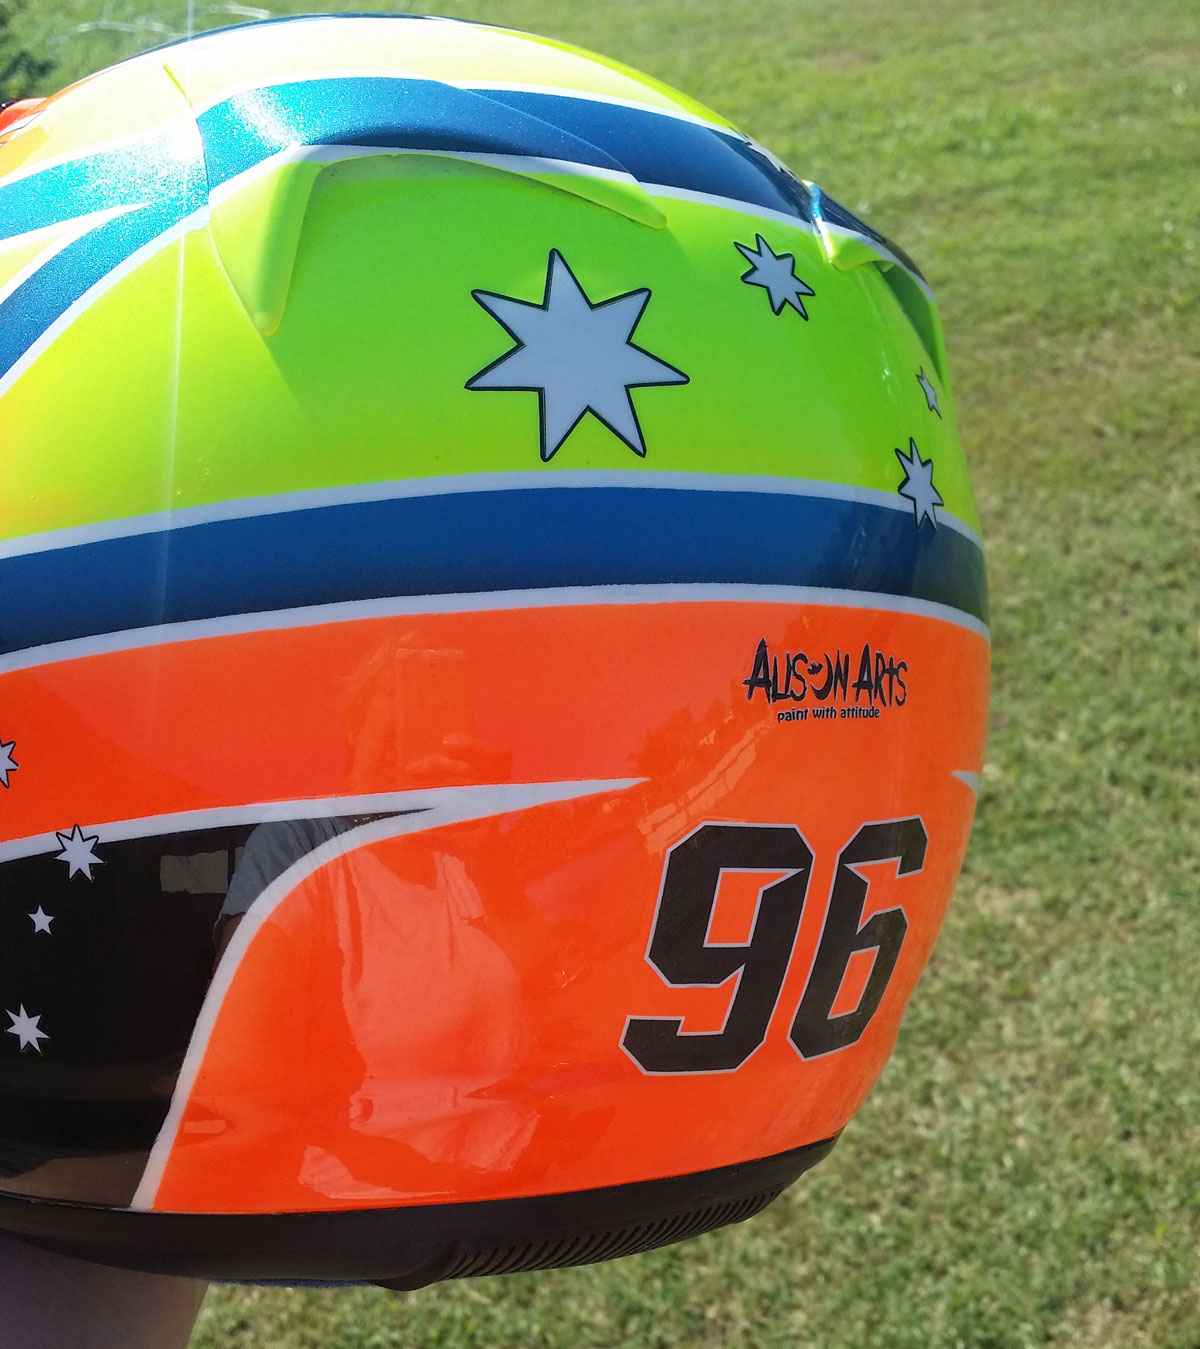 Custom airbrushed Arai helmet